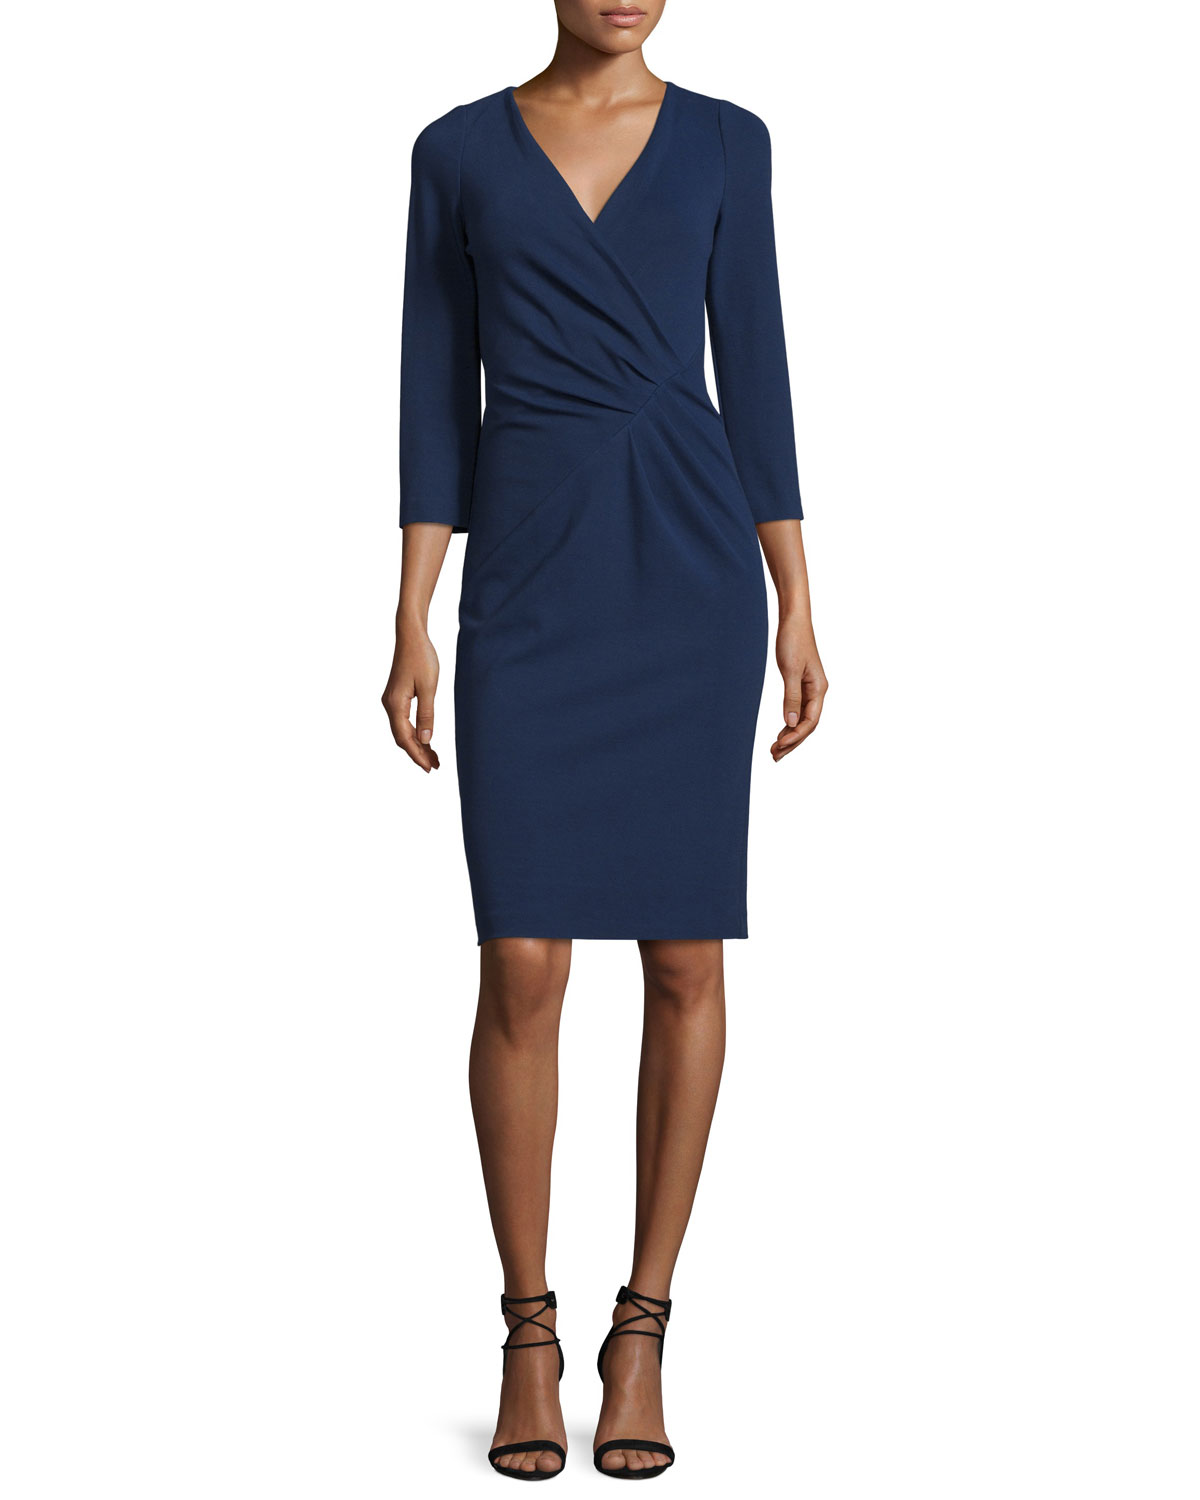 Lenora 3/4-Sleeve Surplice Dress